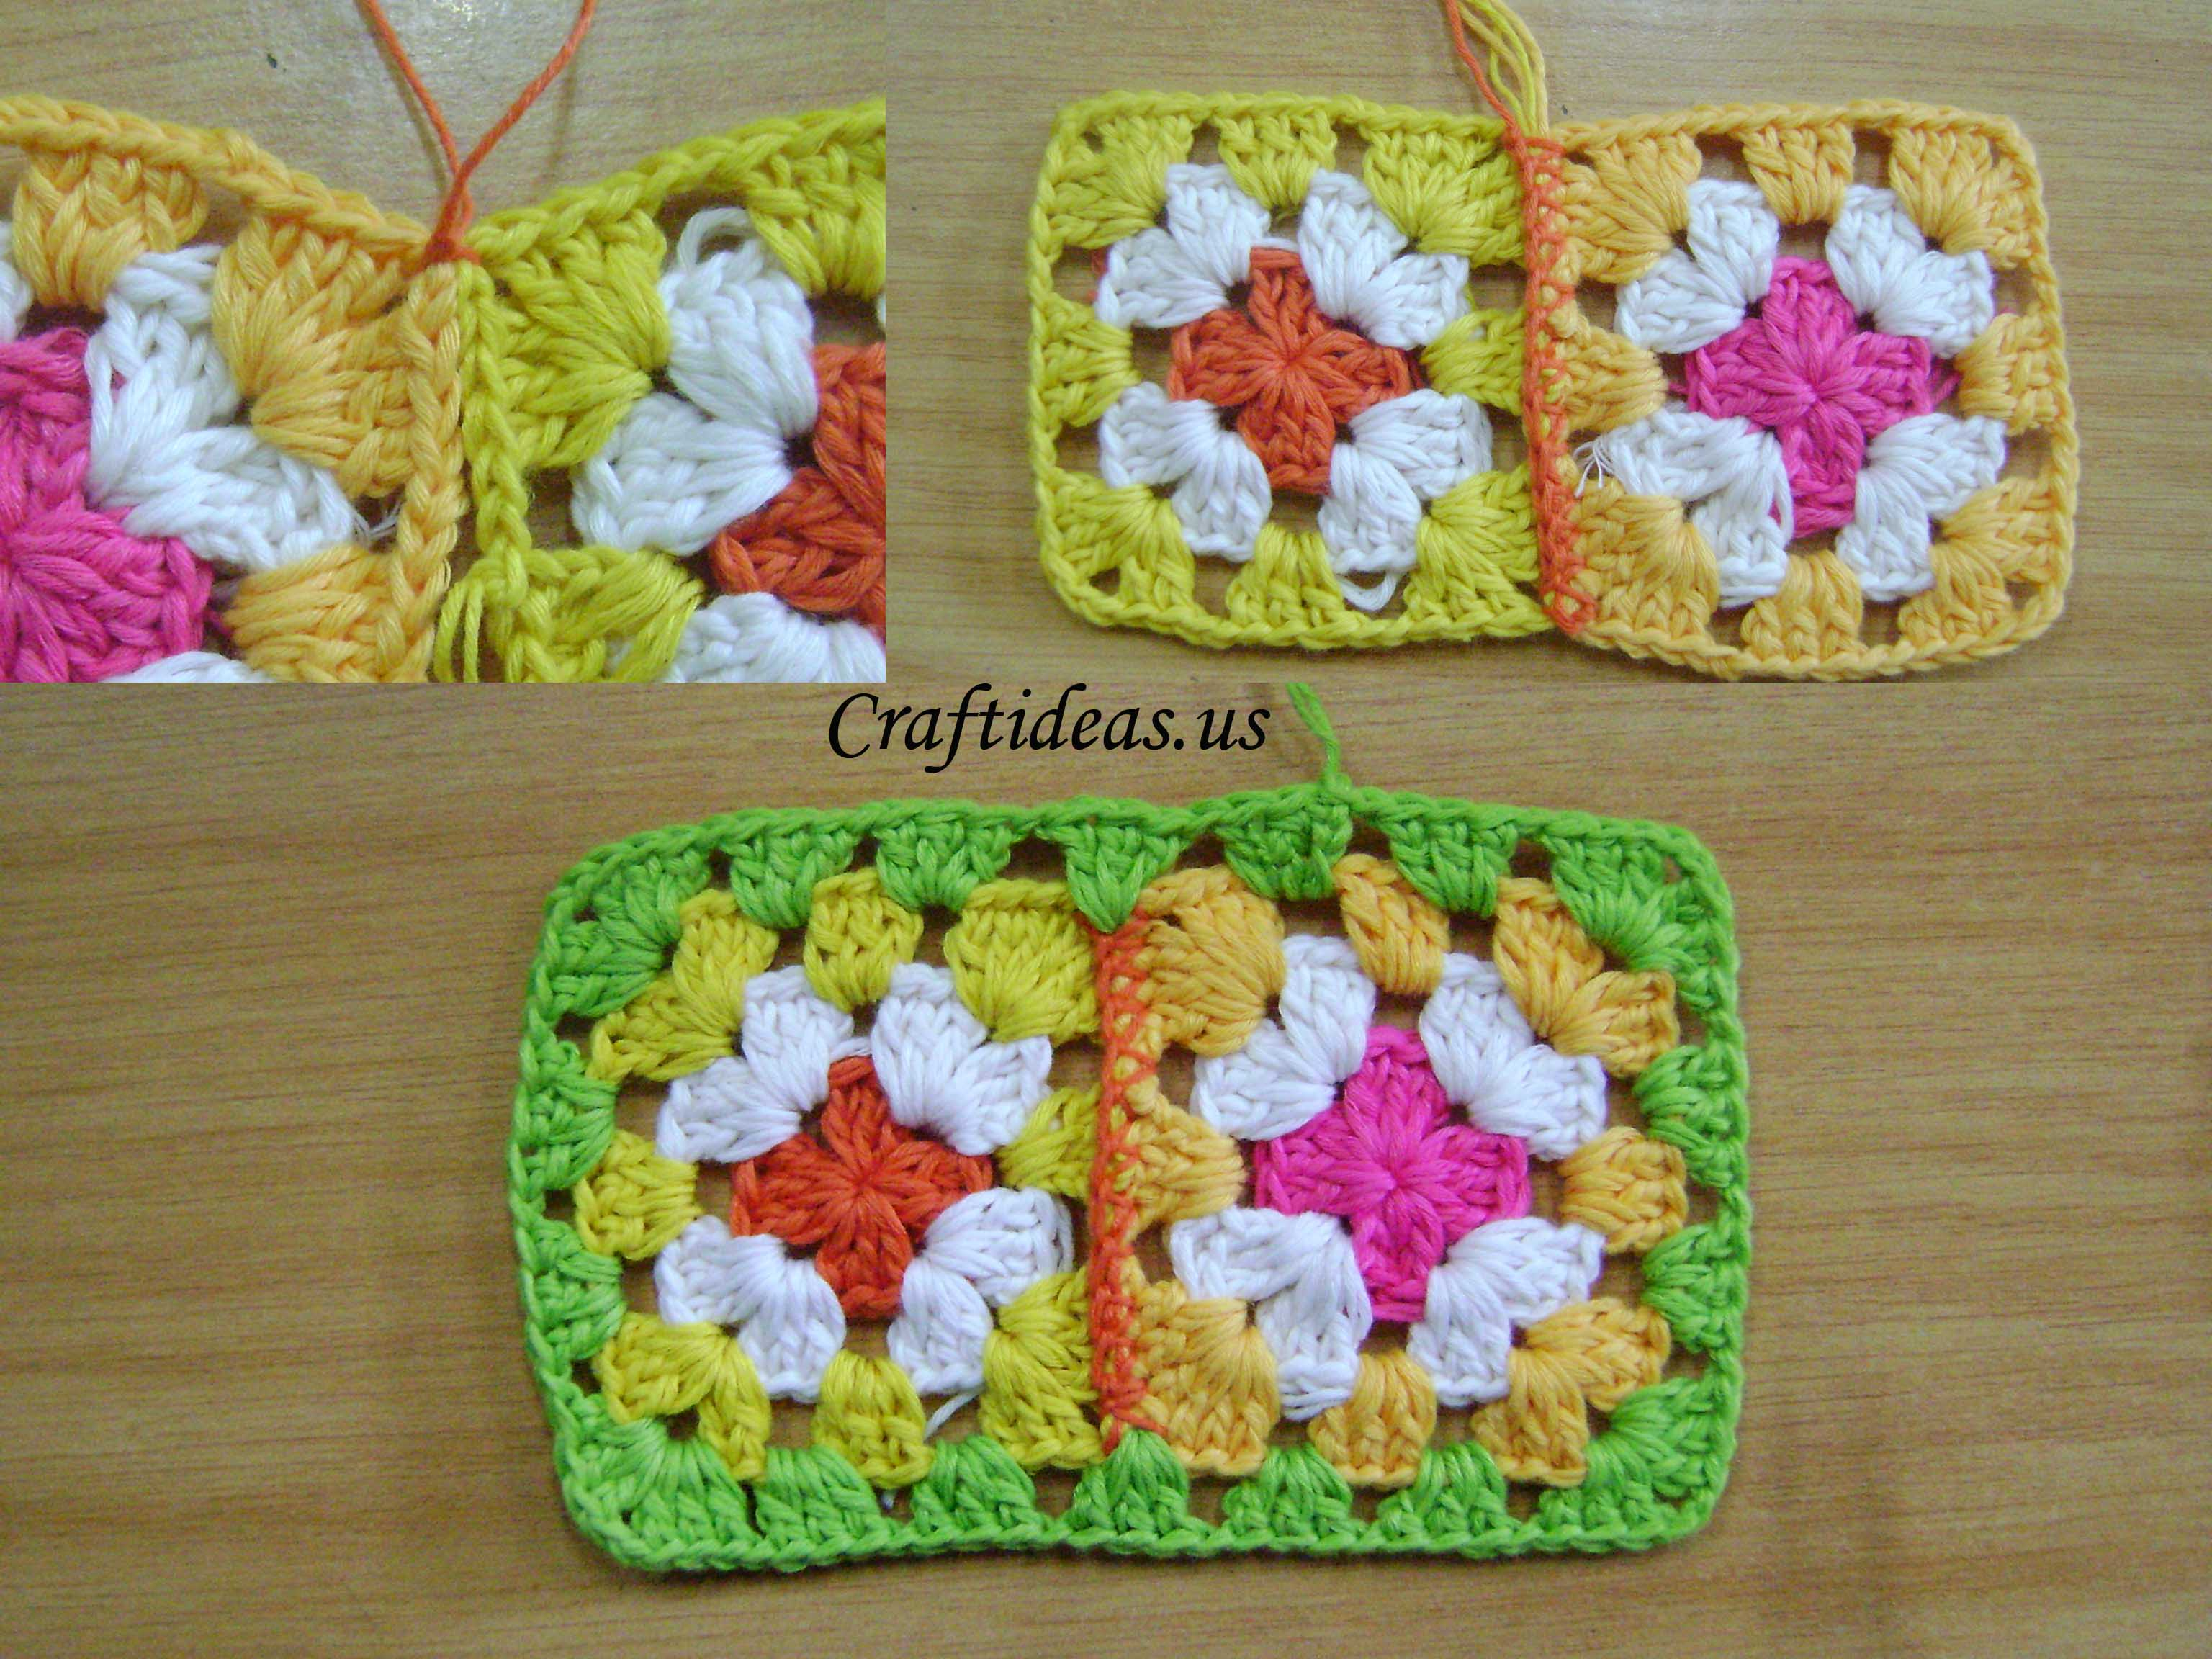 Crochet Bag Tutorial : crochet mini bag tutorial